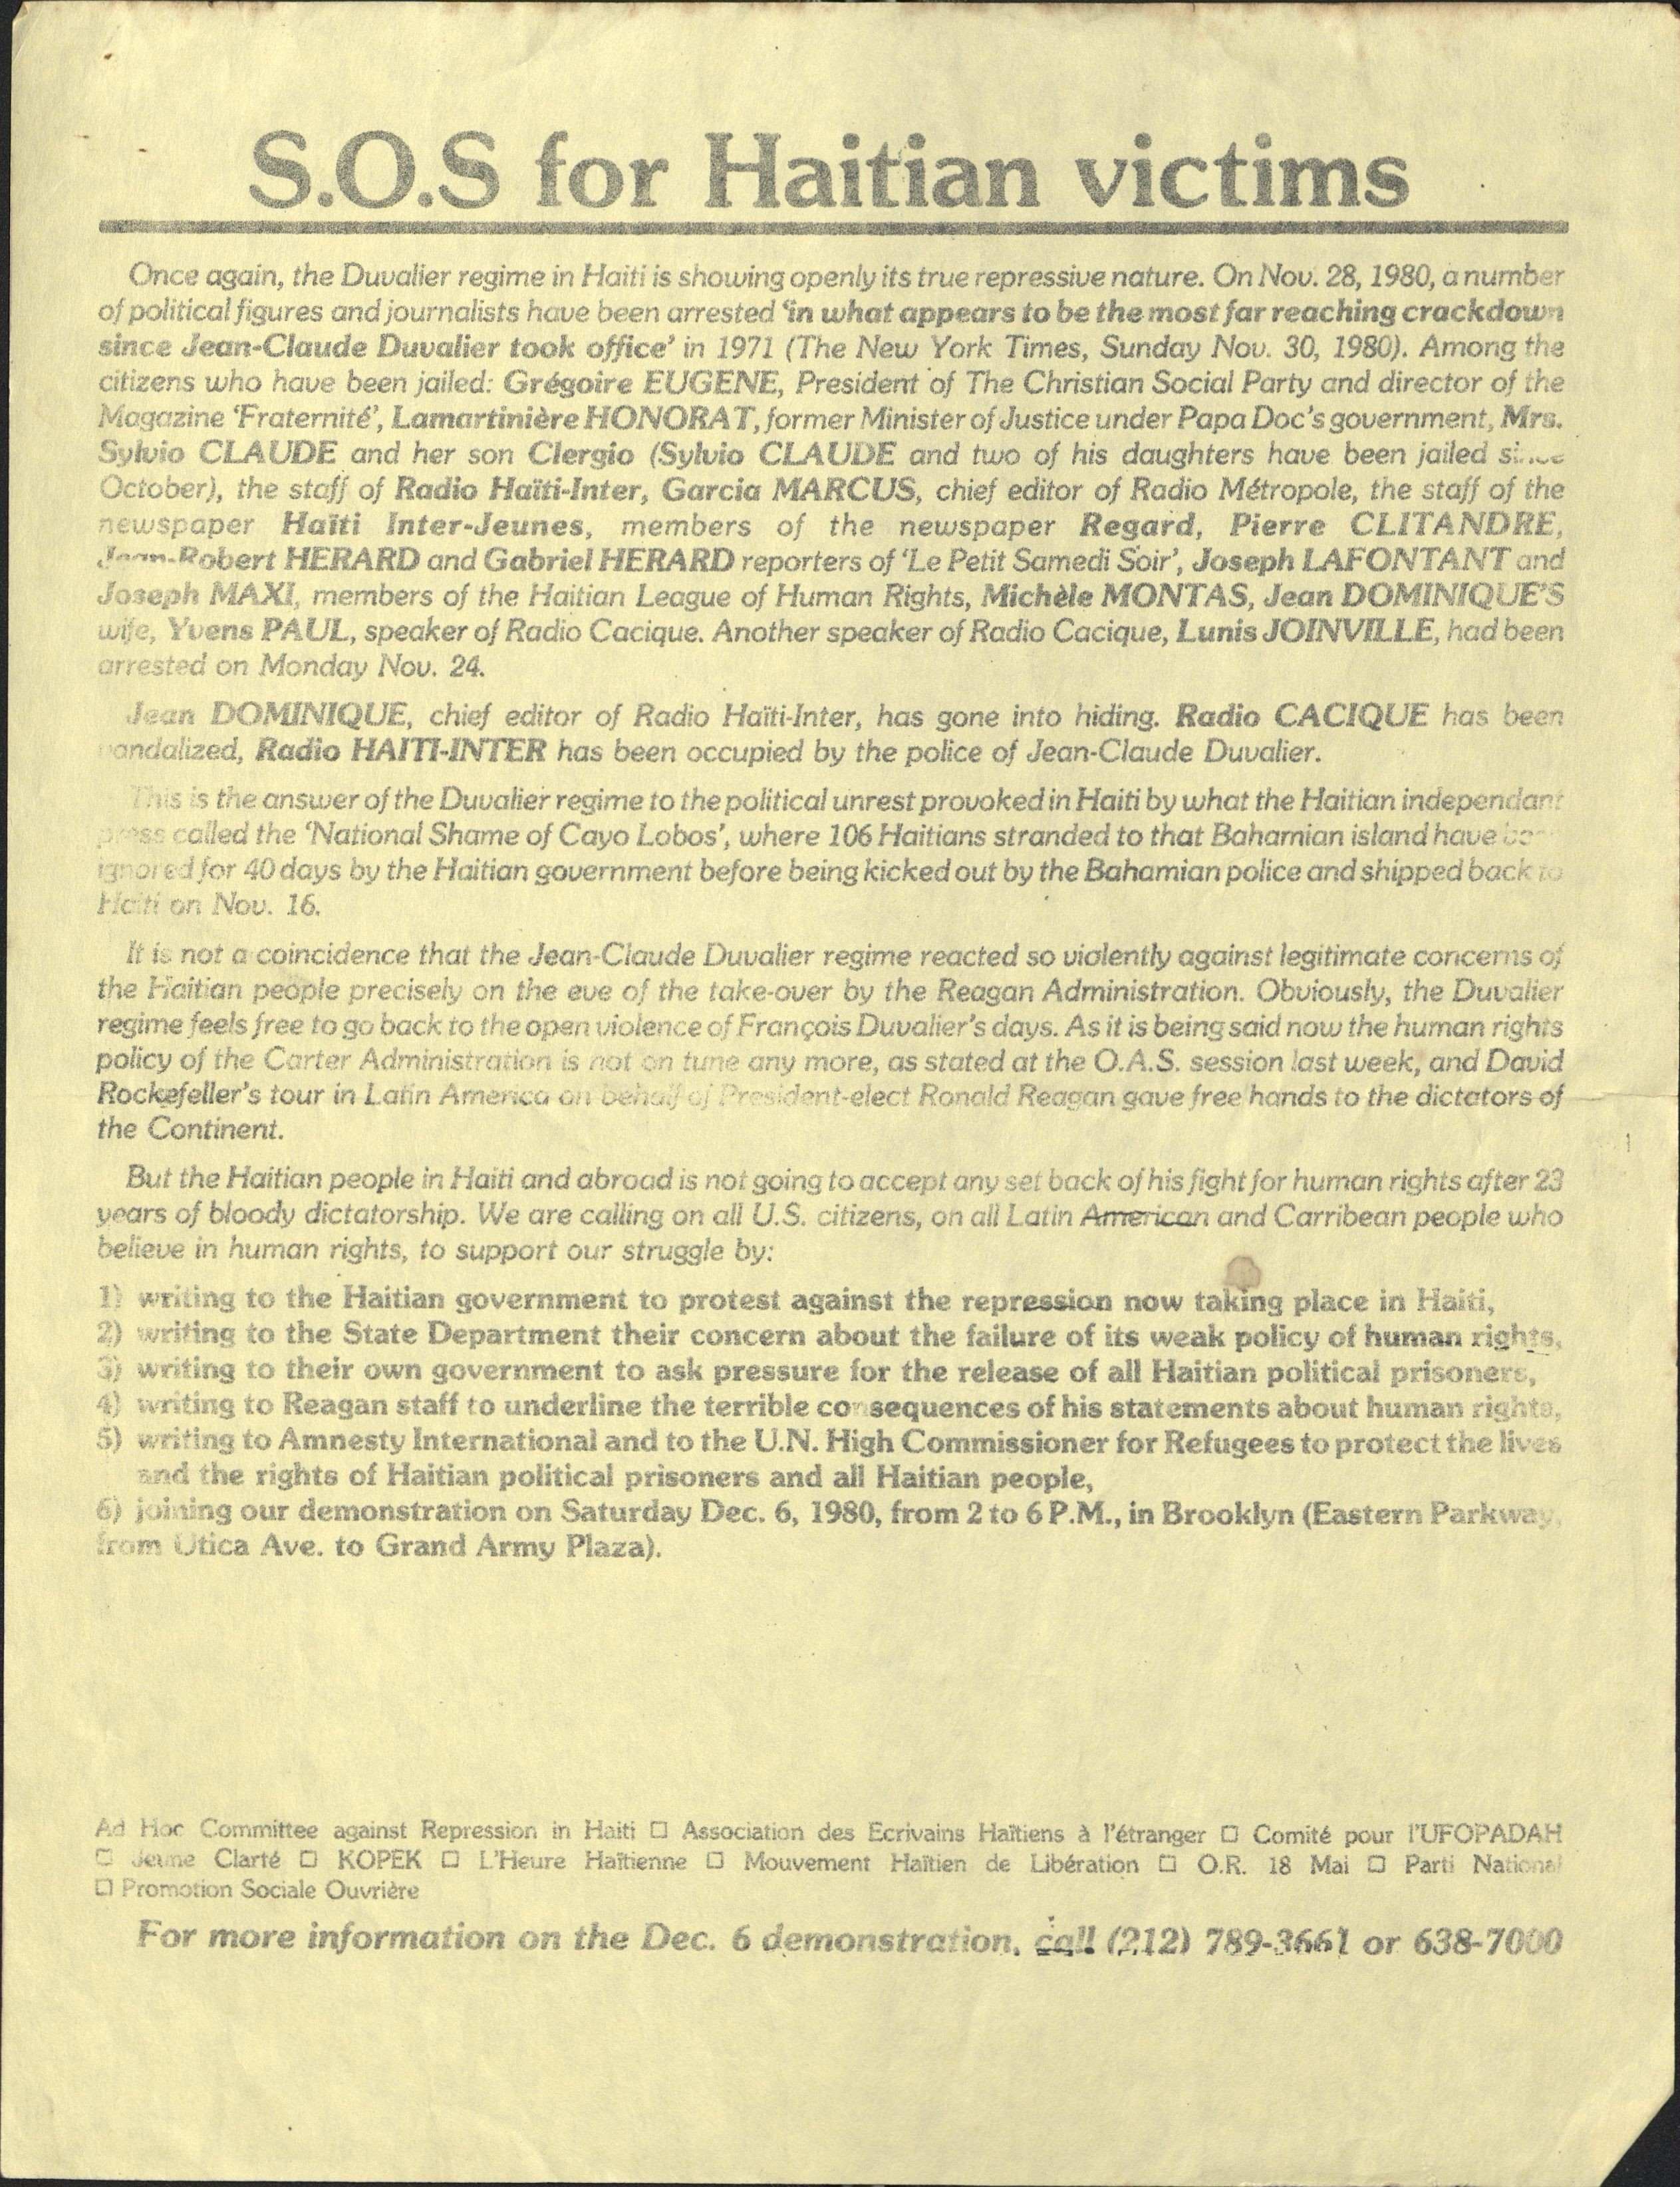 Document about the Duvalier regime and repression of Haitian journlalists